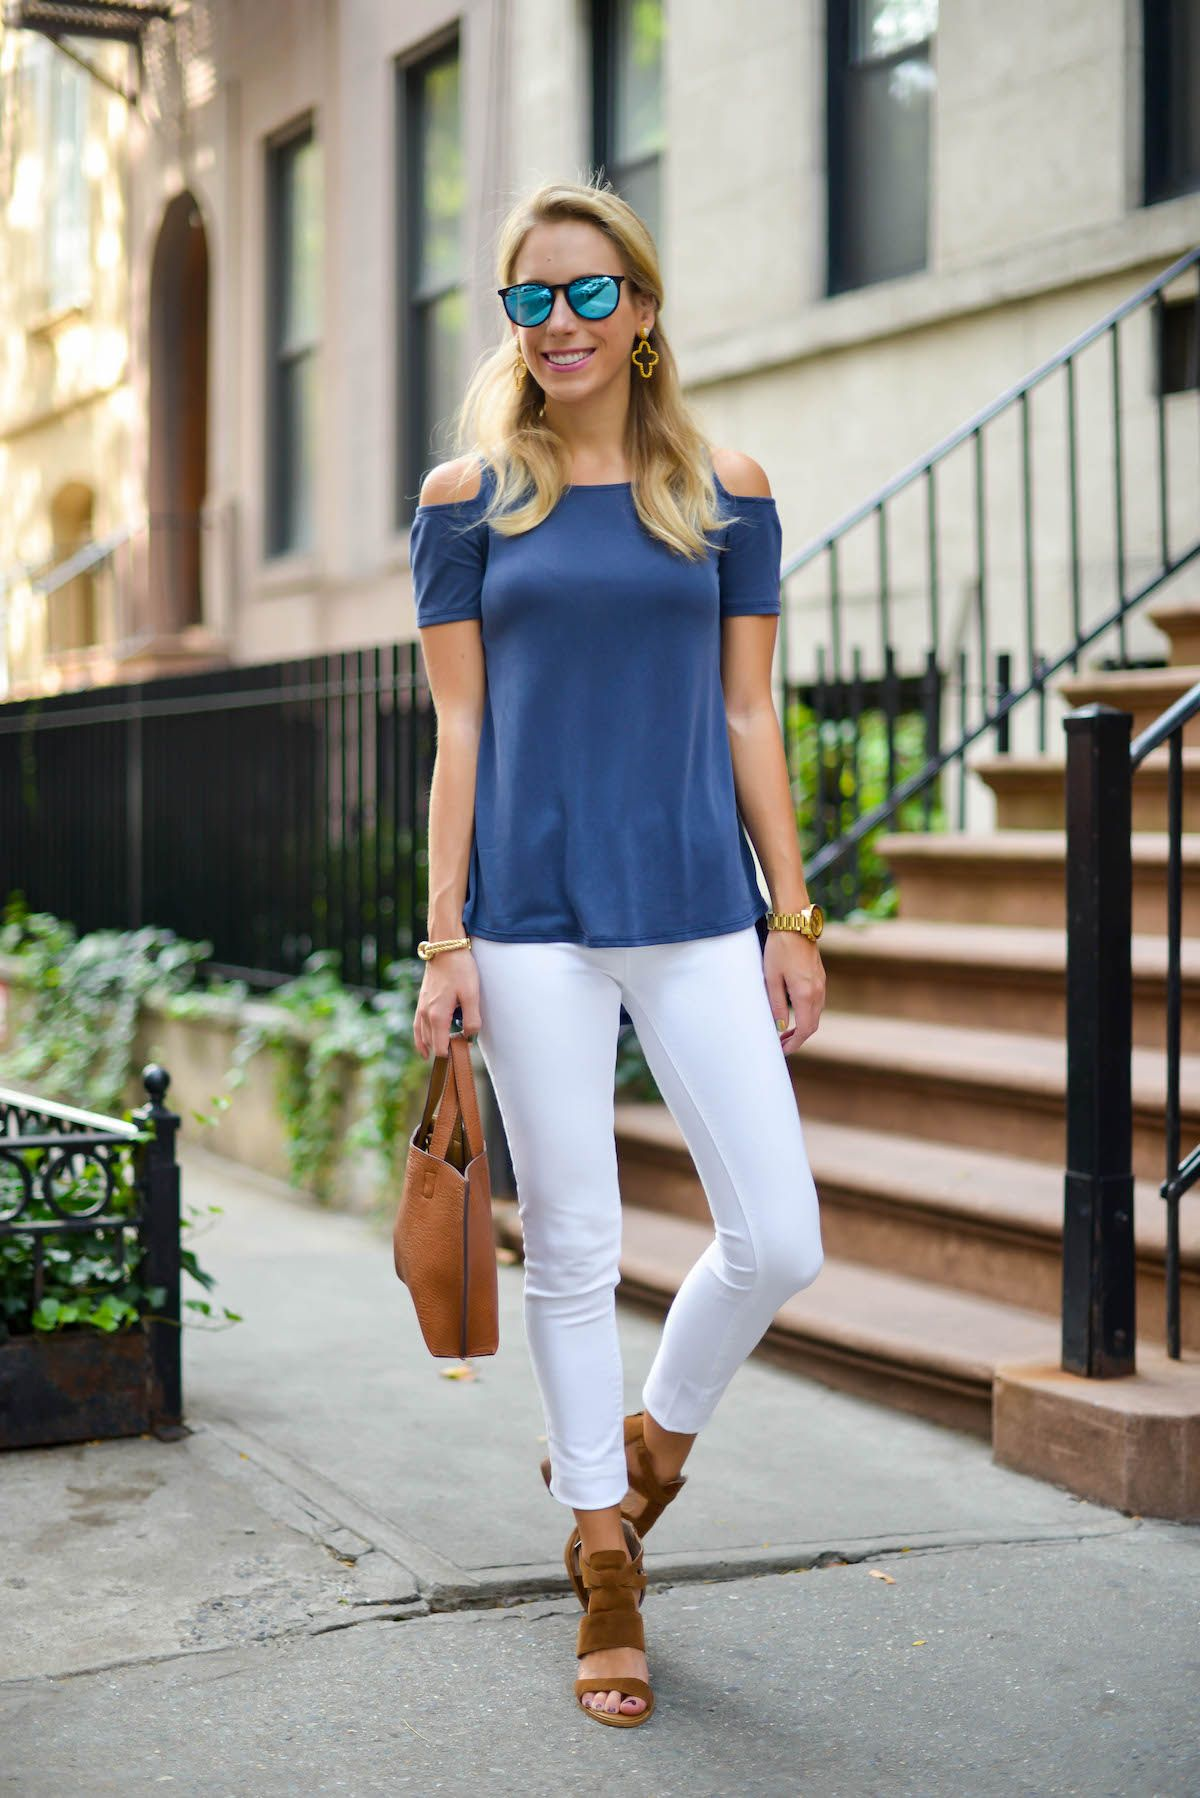 9f7f661a72e485 Outfit Inspiration  Blue Cold Shoulder Top   White Jeans via  katiesbliss